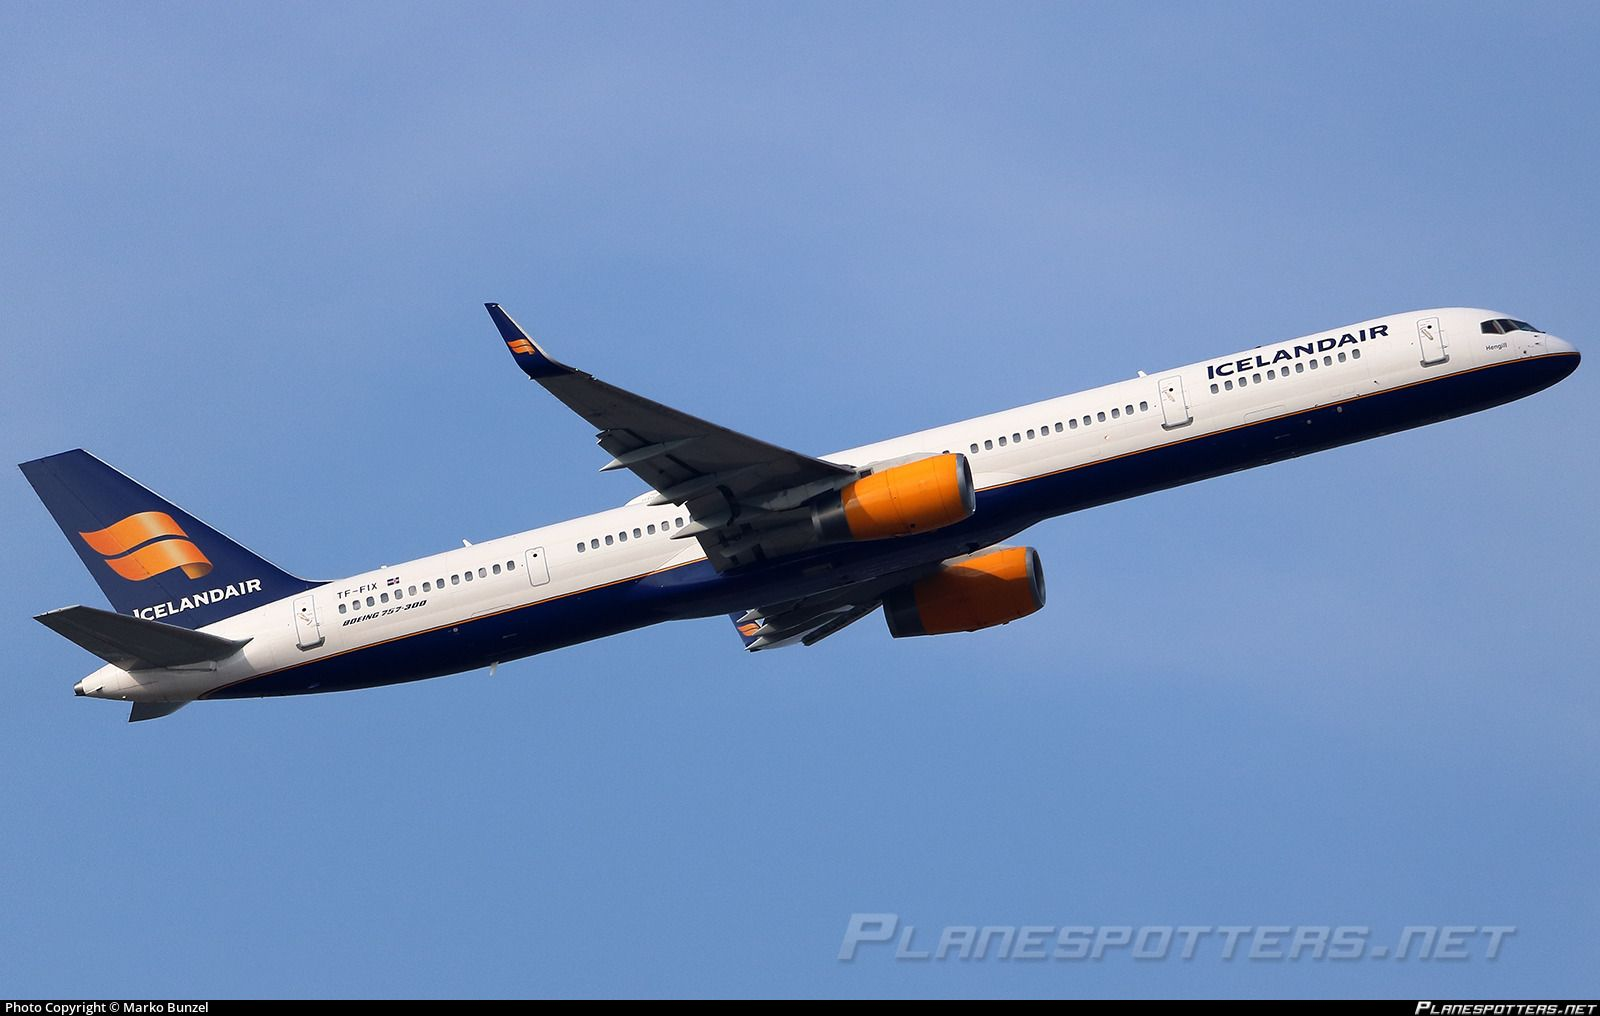 Icelandair Boeing 757 308 Registered Tf Fix Boeing Commercial Aircraft Iceland Air